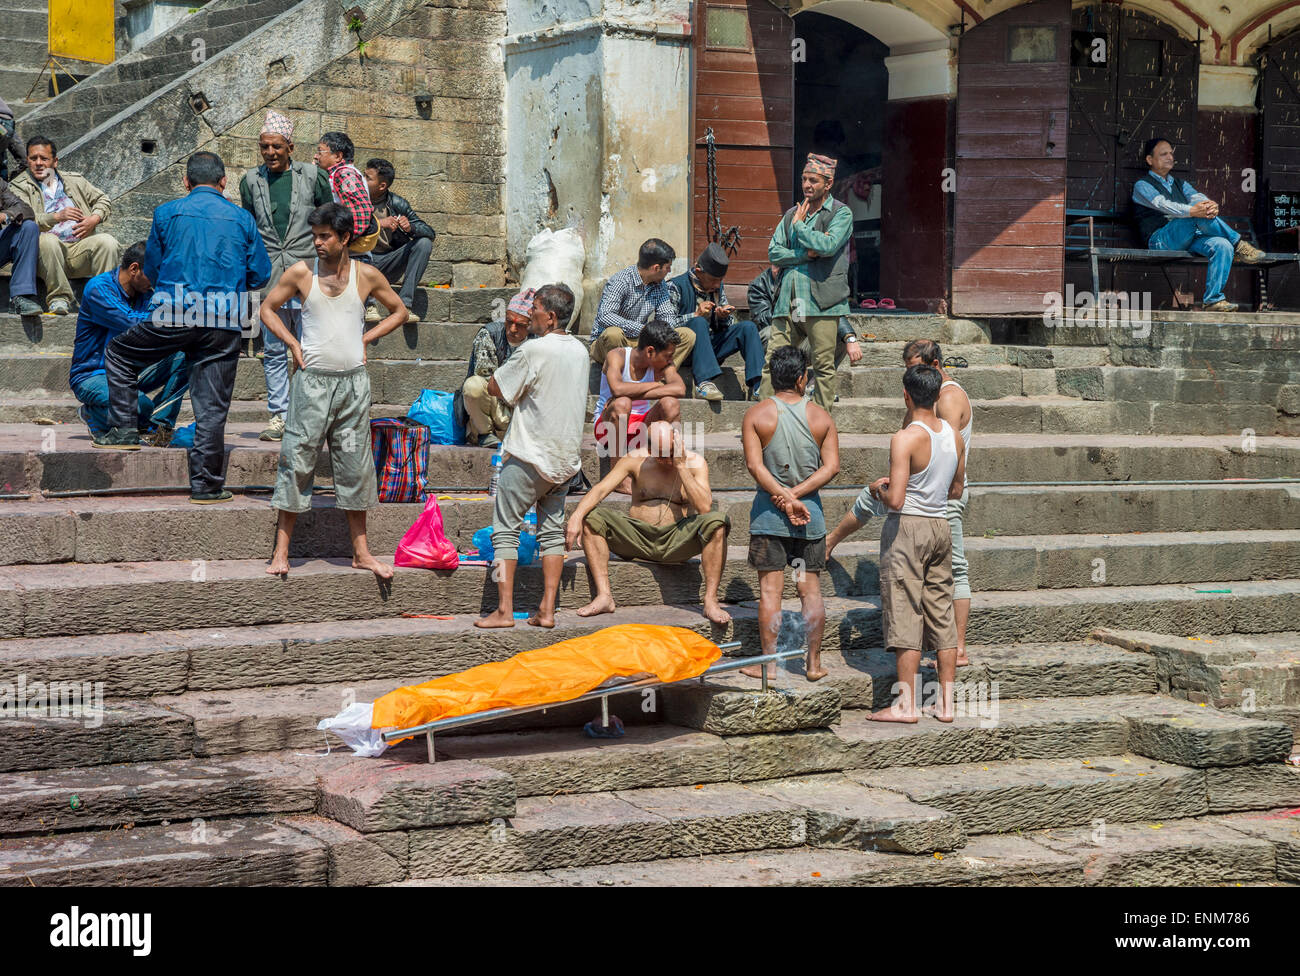 Pashupatinath Temple in Kathmandu. A family is waiting for a cremation ceremony next to a dead body. - Stock Image